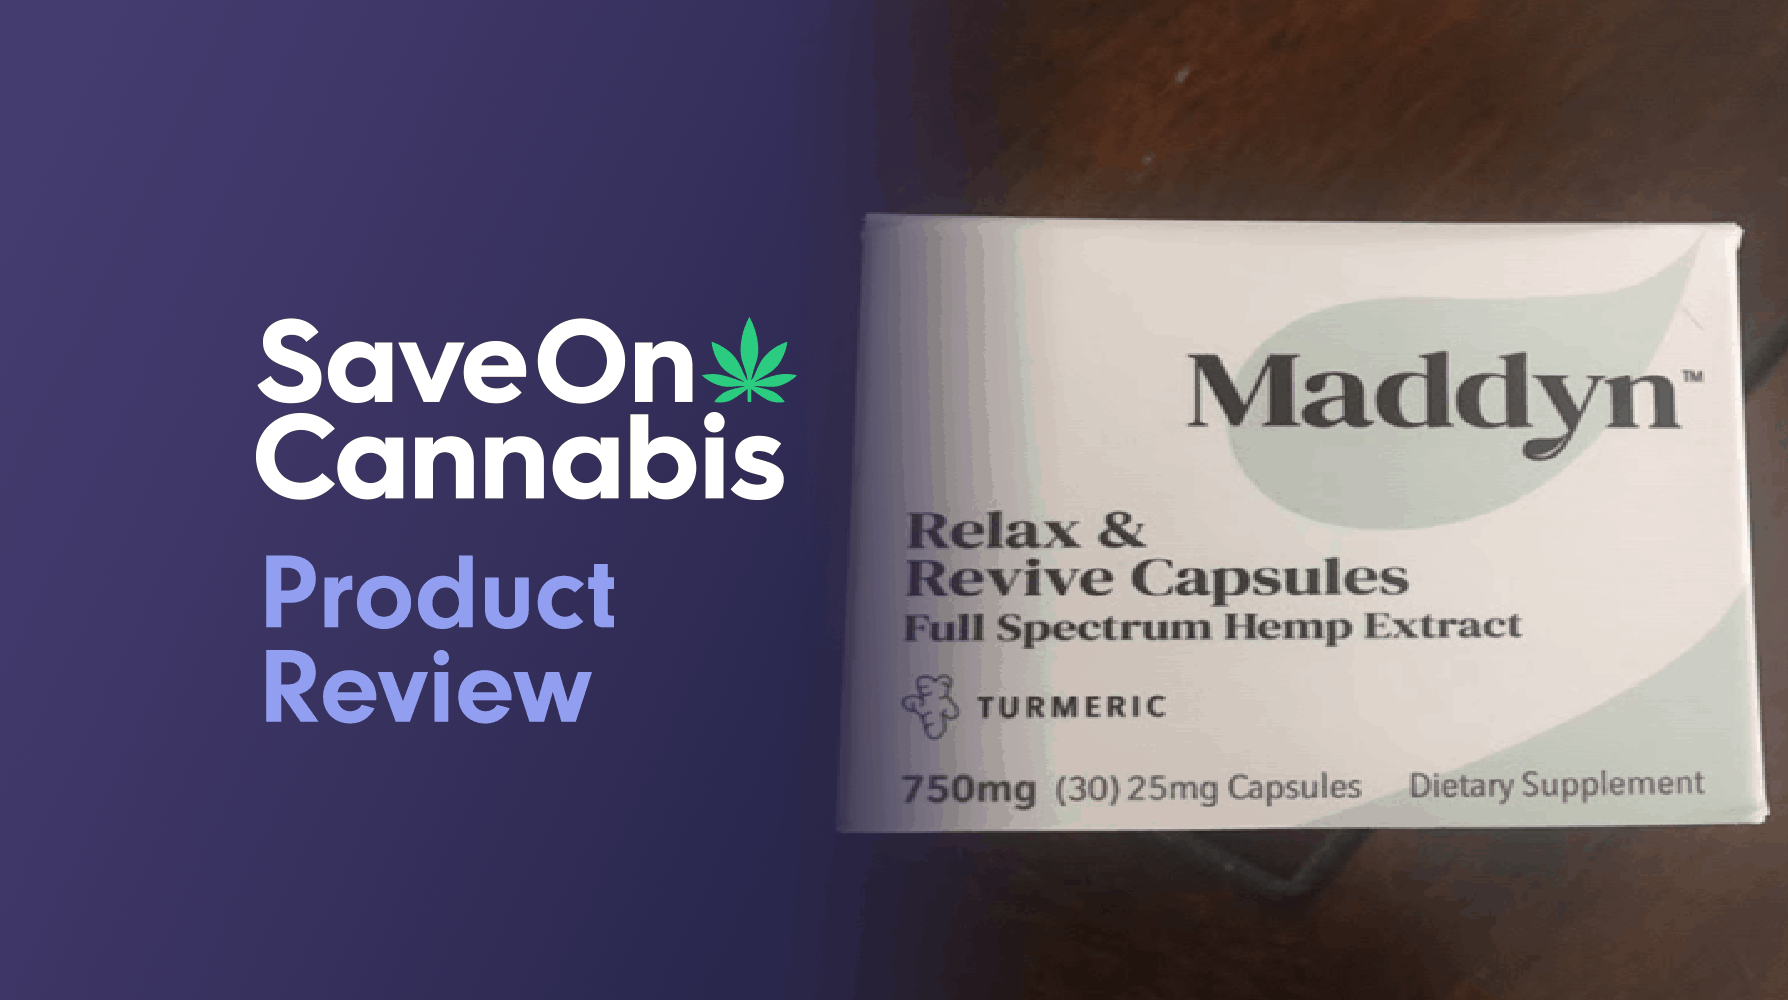 Maddyn Relax & Revive Hemp Extract Turmeric Capsules Save On Cannabis Review Website